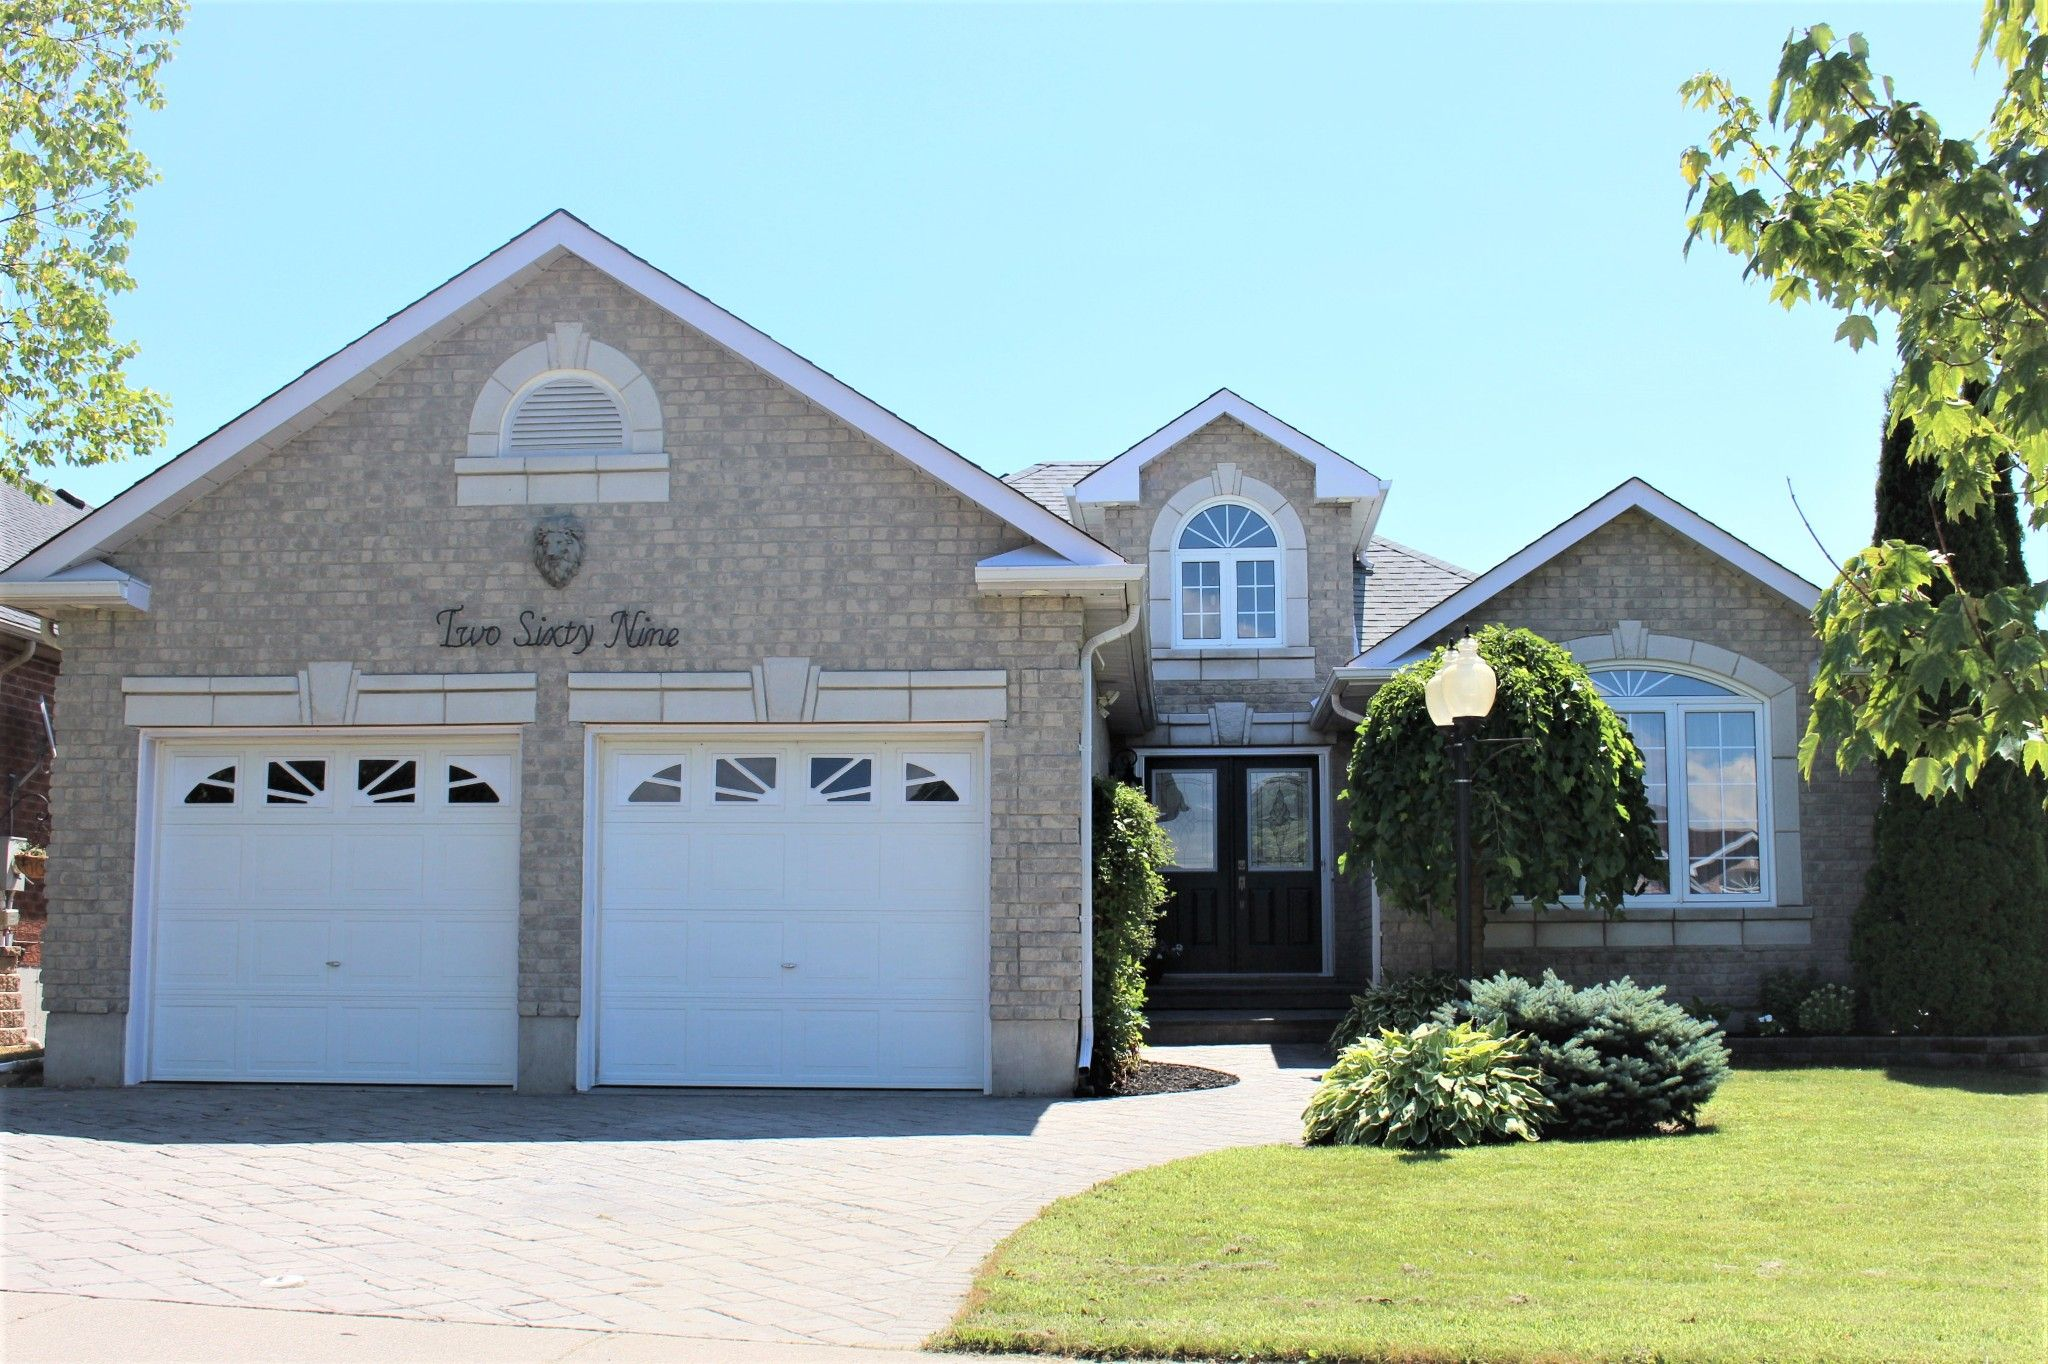 Main Photo: 269 Ivey Crescent in Cobourg: House for sale : MLS®# 277423